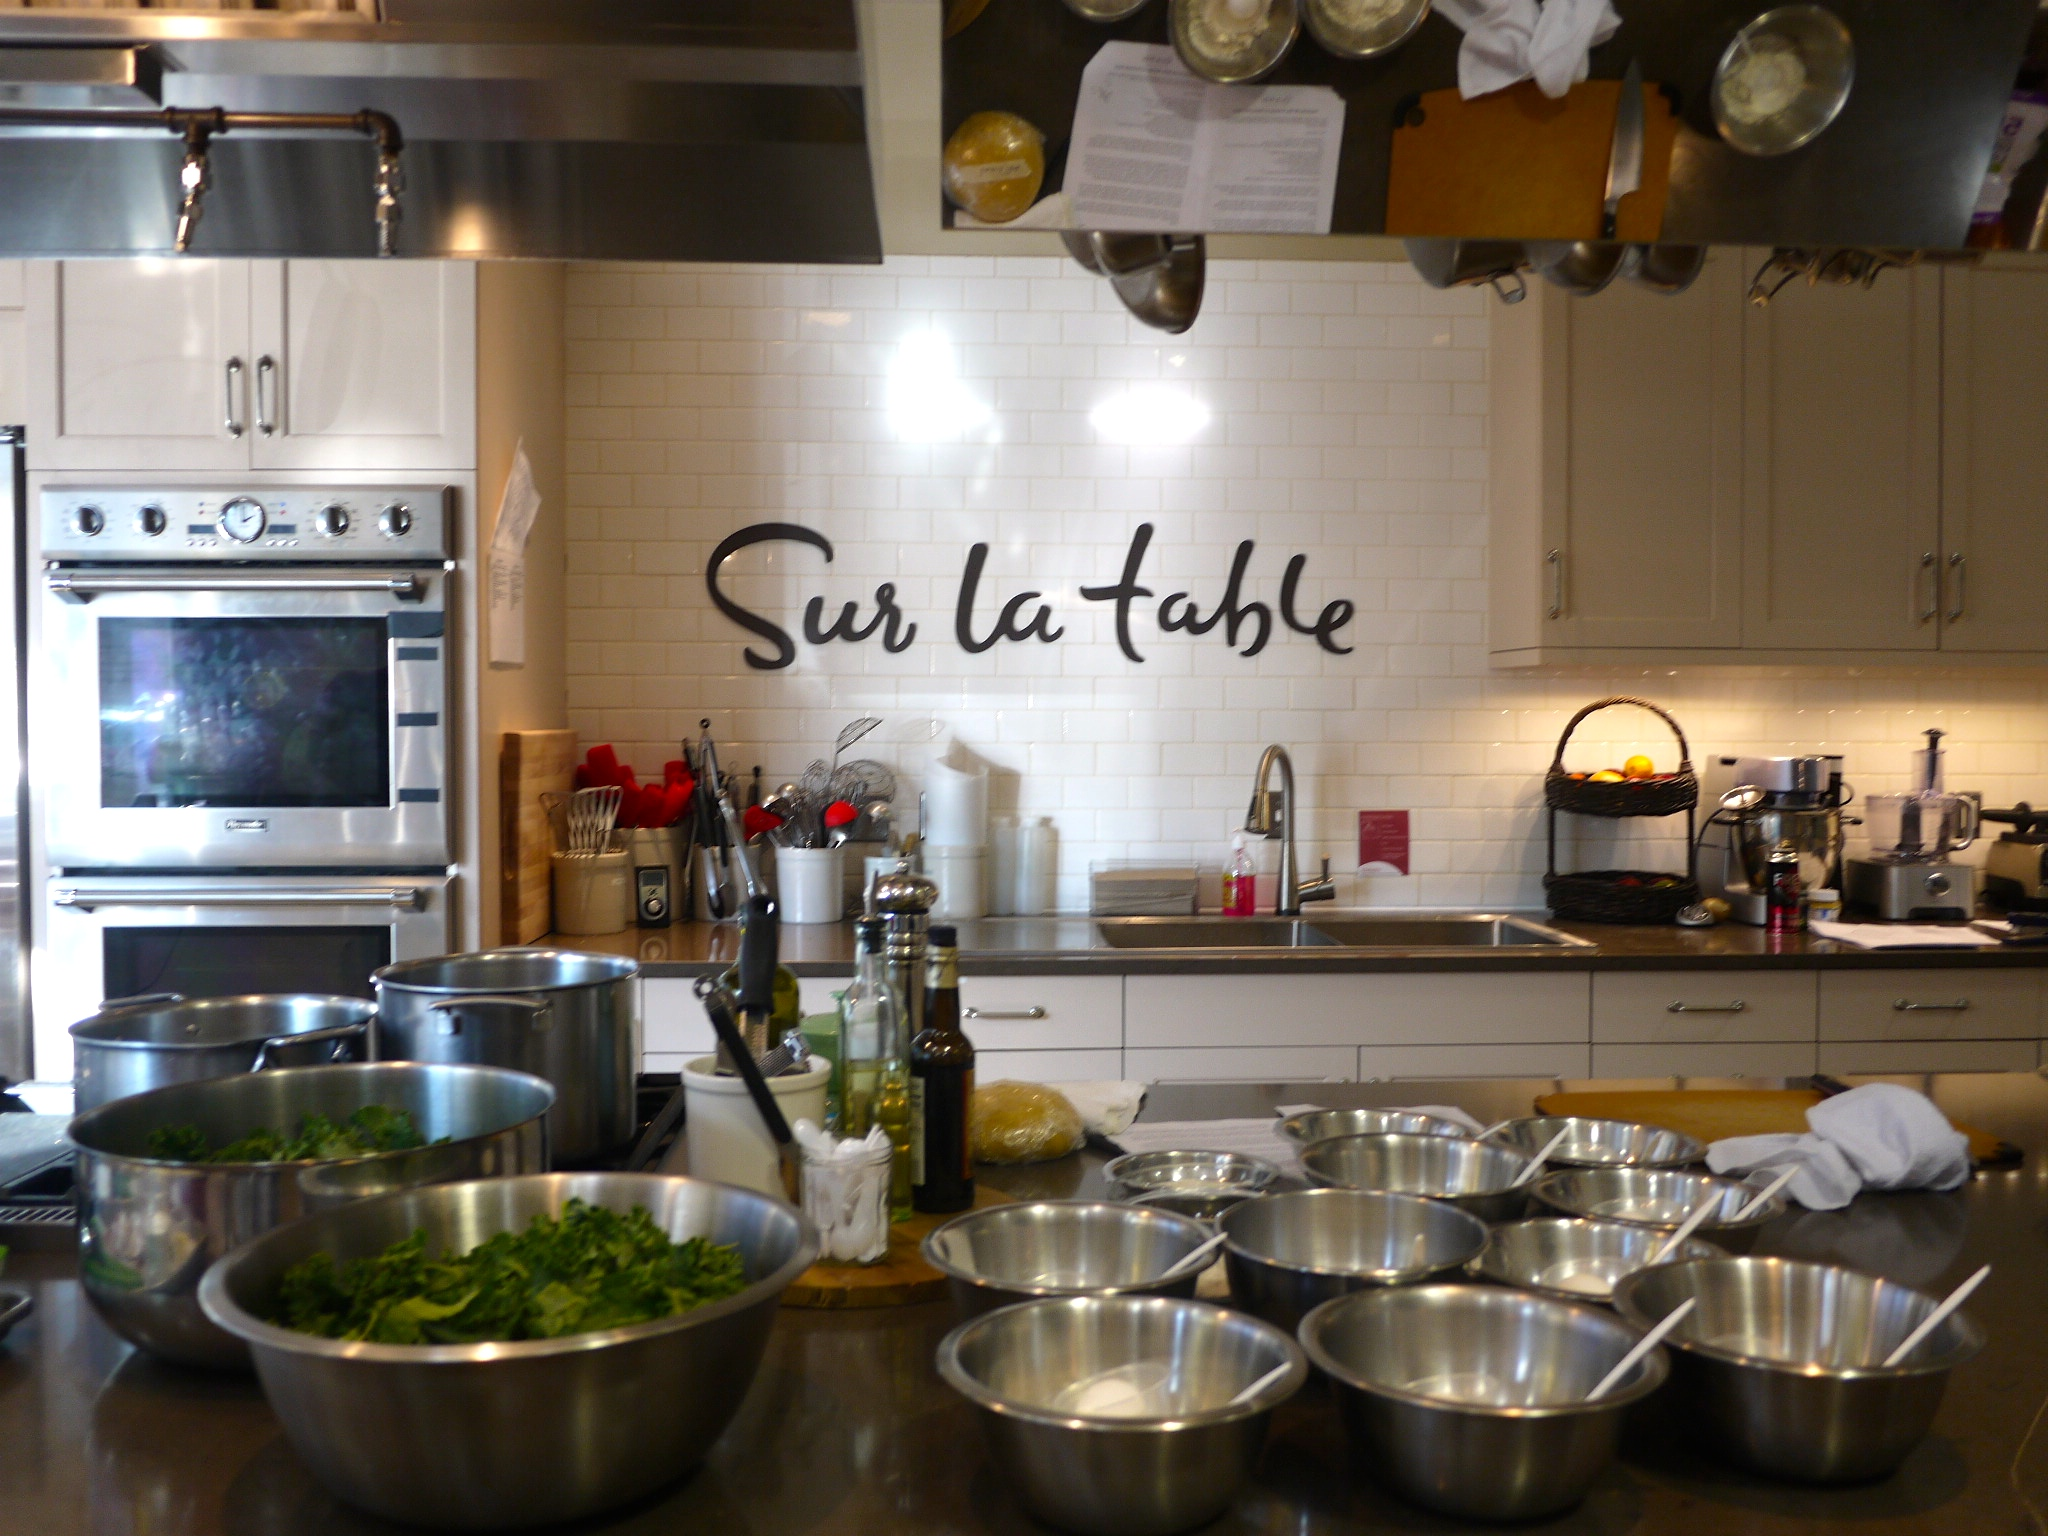 an education staycation in sd cooking classes architecture tours more kitchen table cooking school An Education Staycation in SD Cooking Classes Architecture Tours More VisitPB com